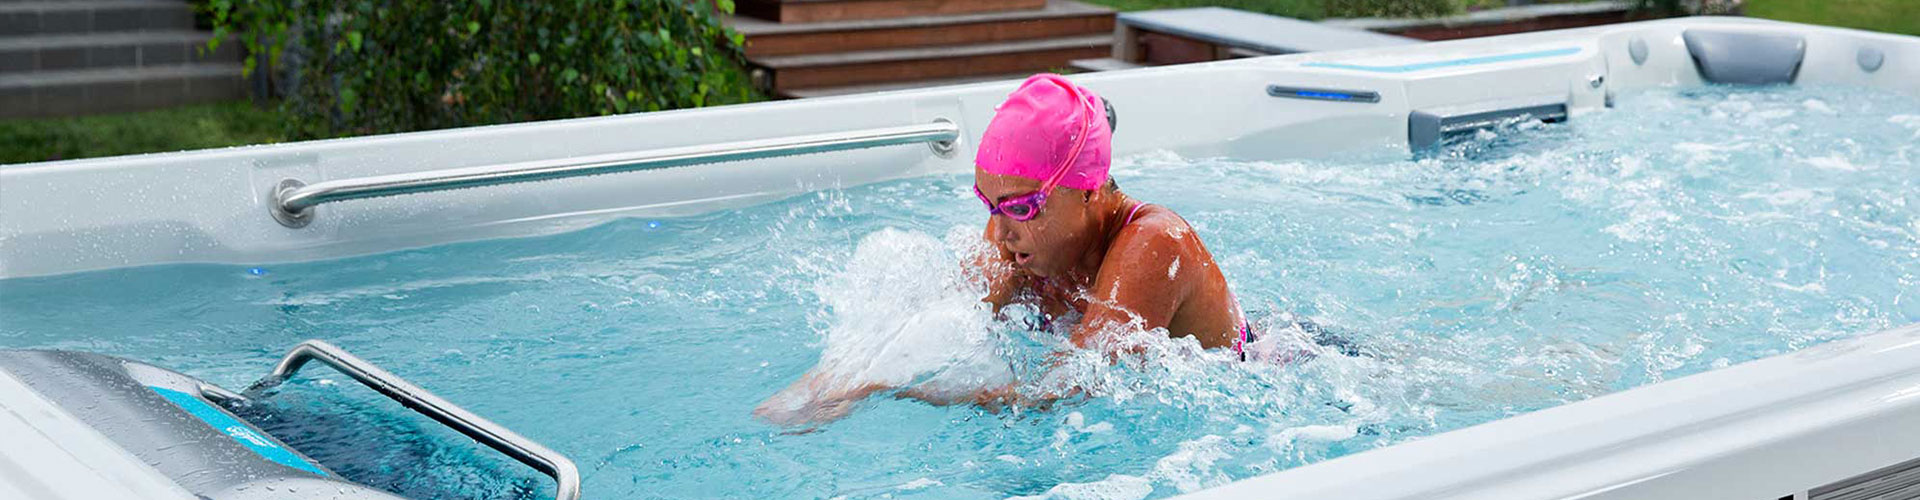 3 Ways a Lap Pool Can Benefit the Family, Swim Spa Dealer Cottonwood